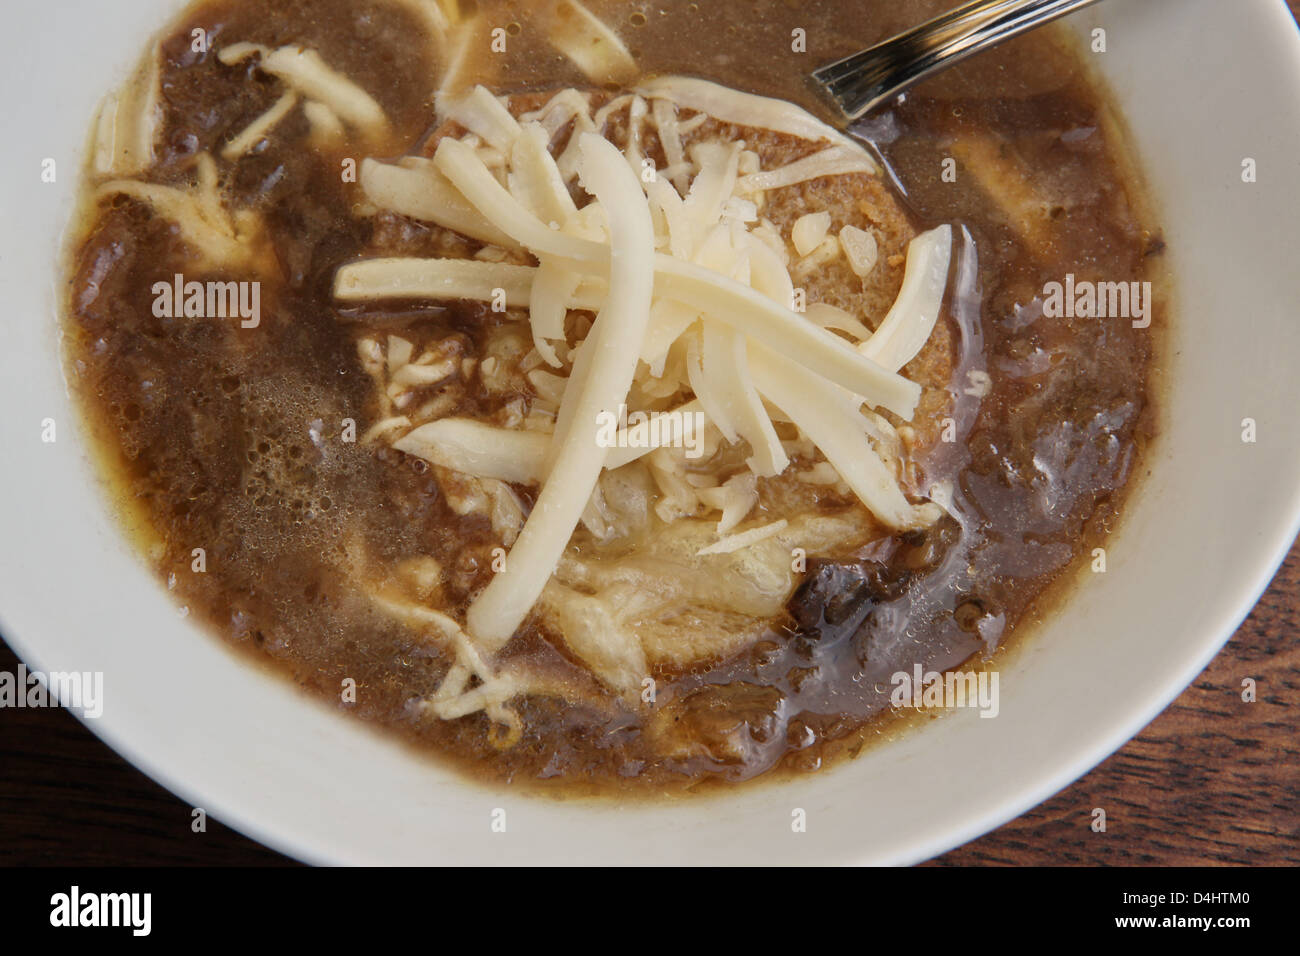 A plate of onion soup with toast and grated cheese - Stock Image